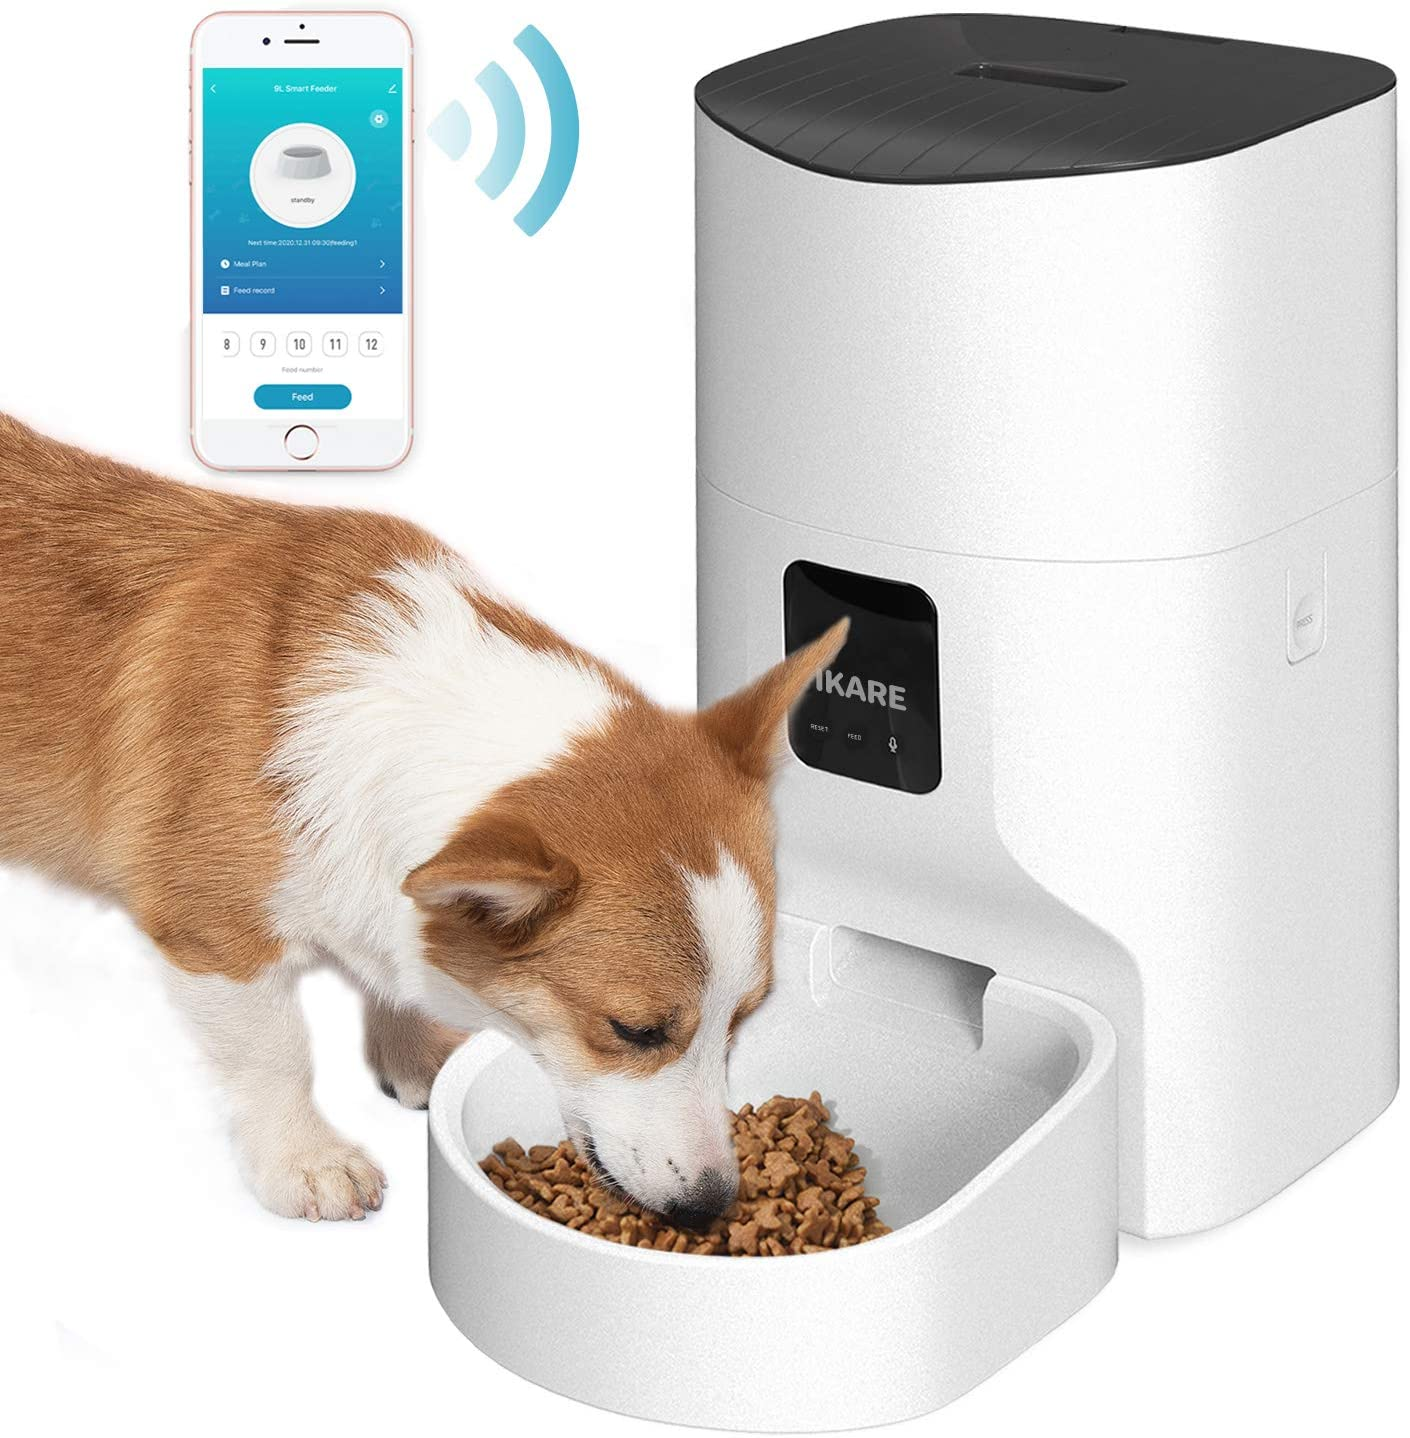 IKARE Automatic Dog Feeder, 9L Auto Pet Cat Food Dispenser Smart Feeder, Portion Control, Programmable Timer for up to 12 Meals per Day, 10s Voice Recorder, Wi-Fi Enabled, App for Android and iPhone